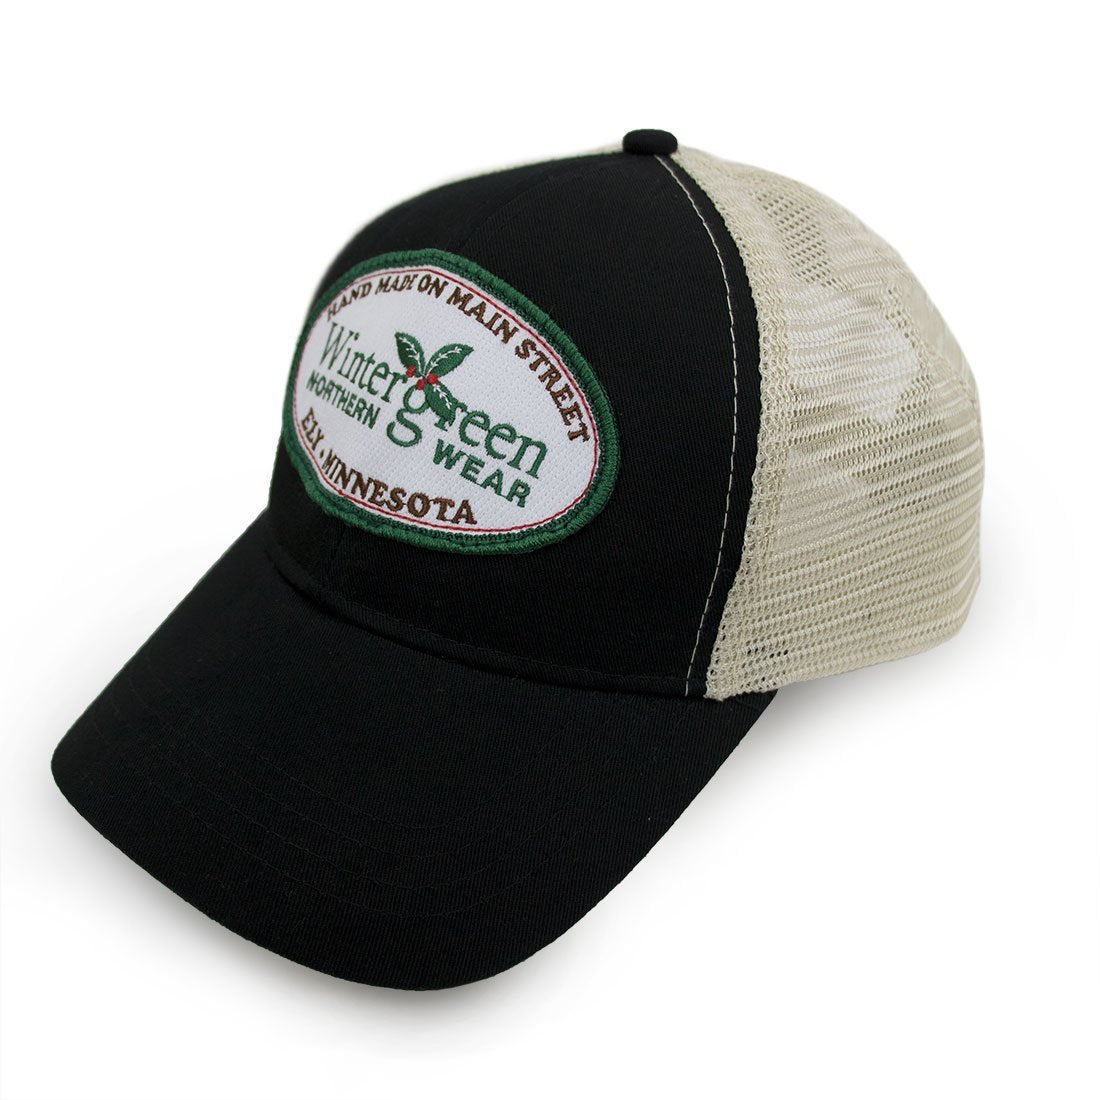 00a85a6fda1 Wintergreen Northern Wear Hat Wintergreen Patch Hat clothing made in  america minnesota made outdoor clothing ely